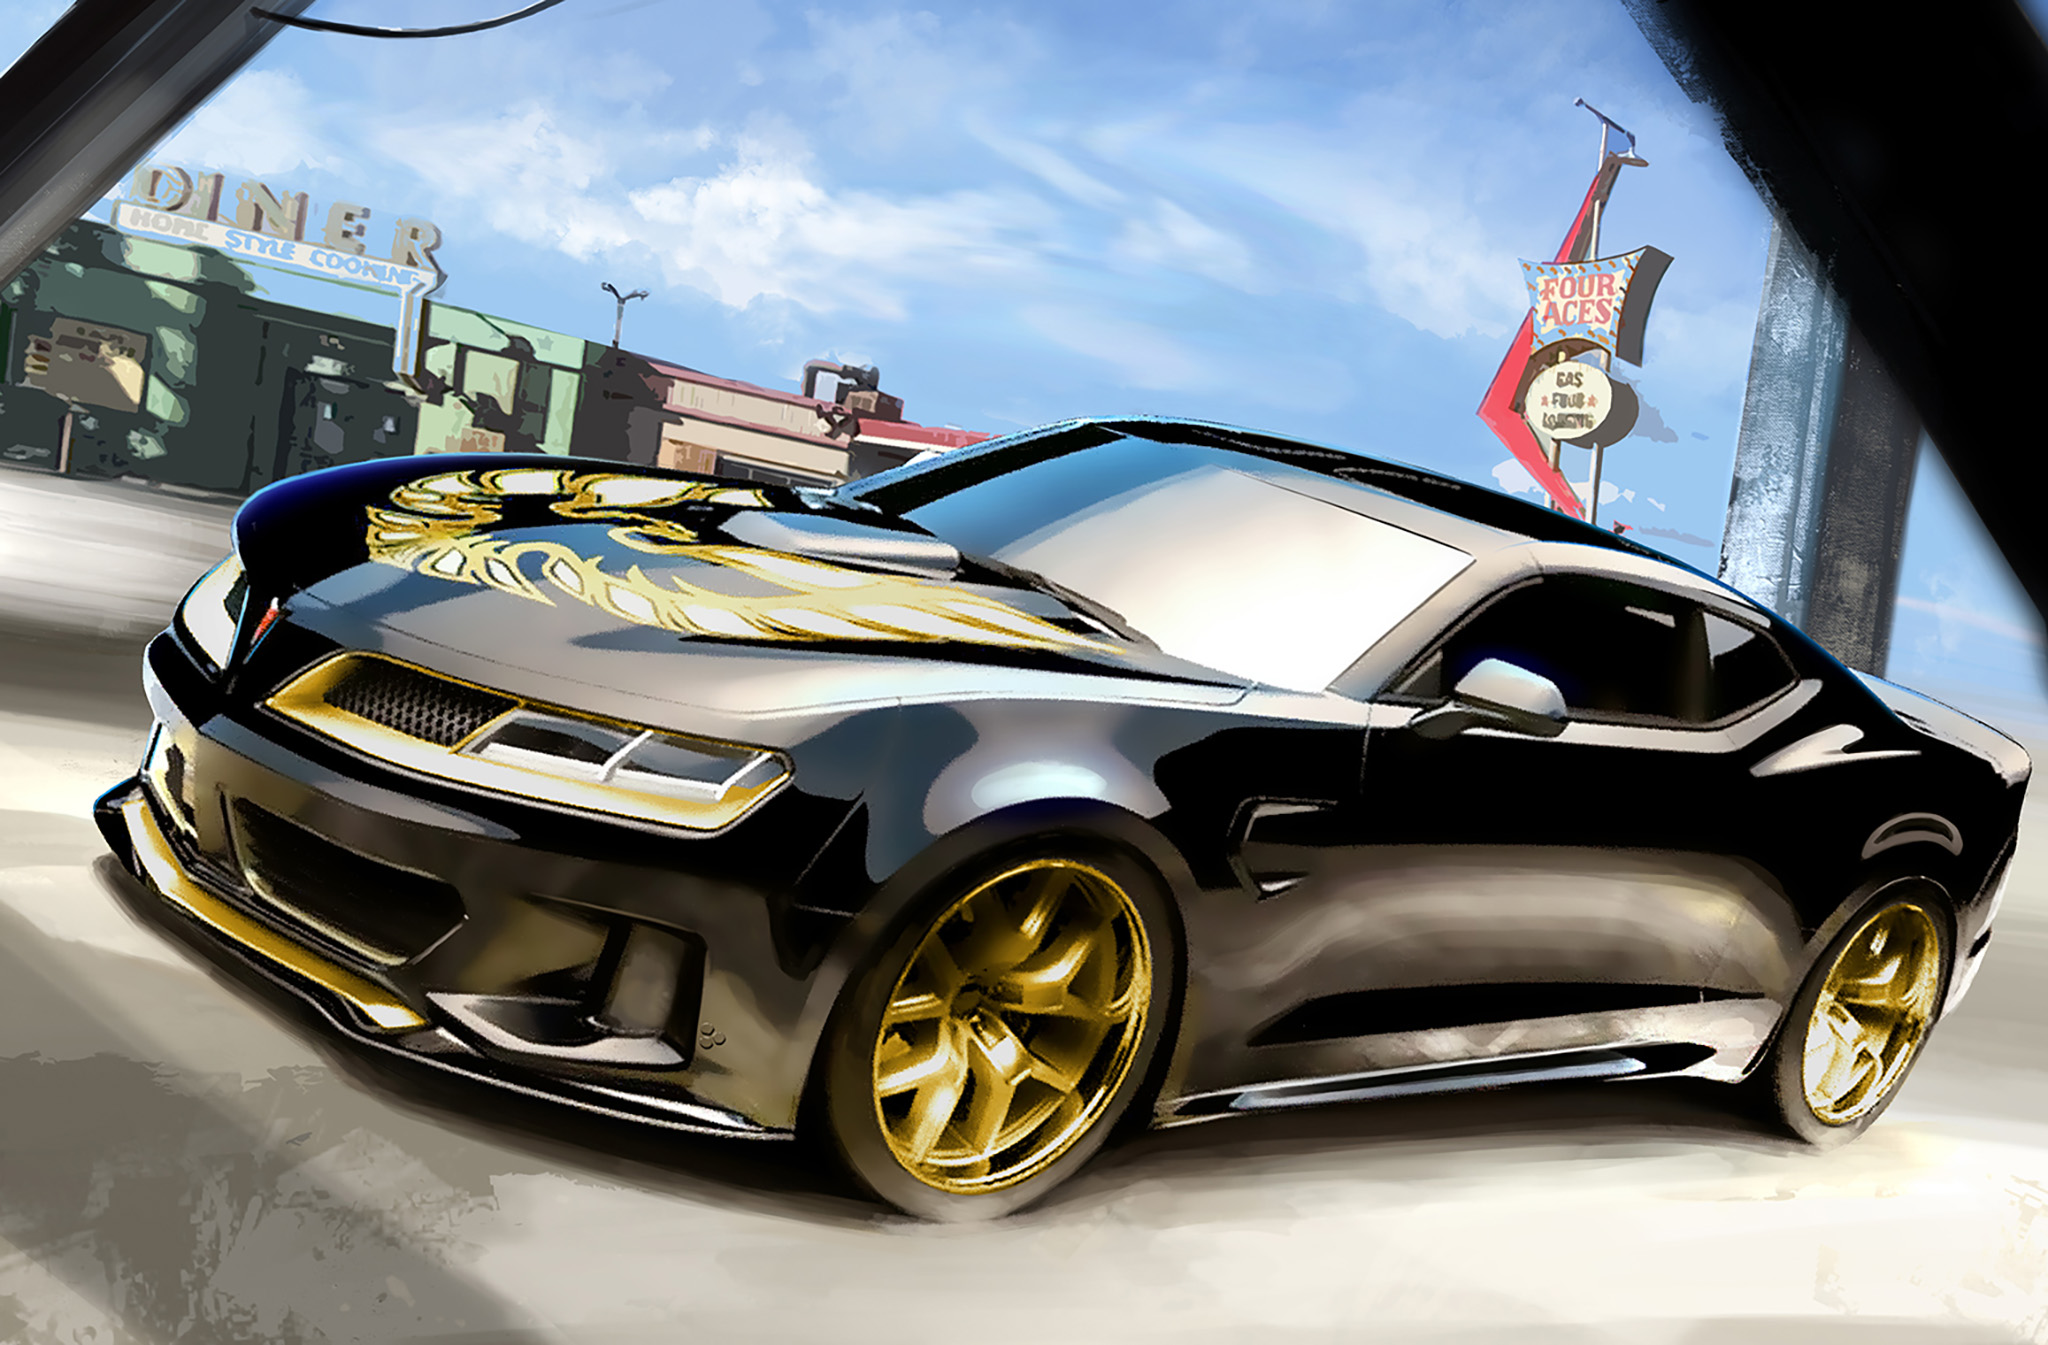 Smoky And The Bandit Trans Am By Inspire Lab on Honda Civic Magazine